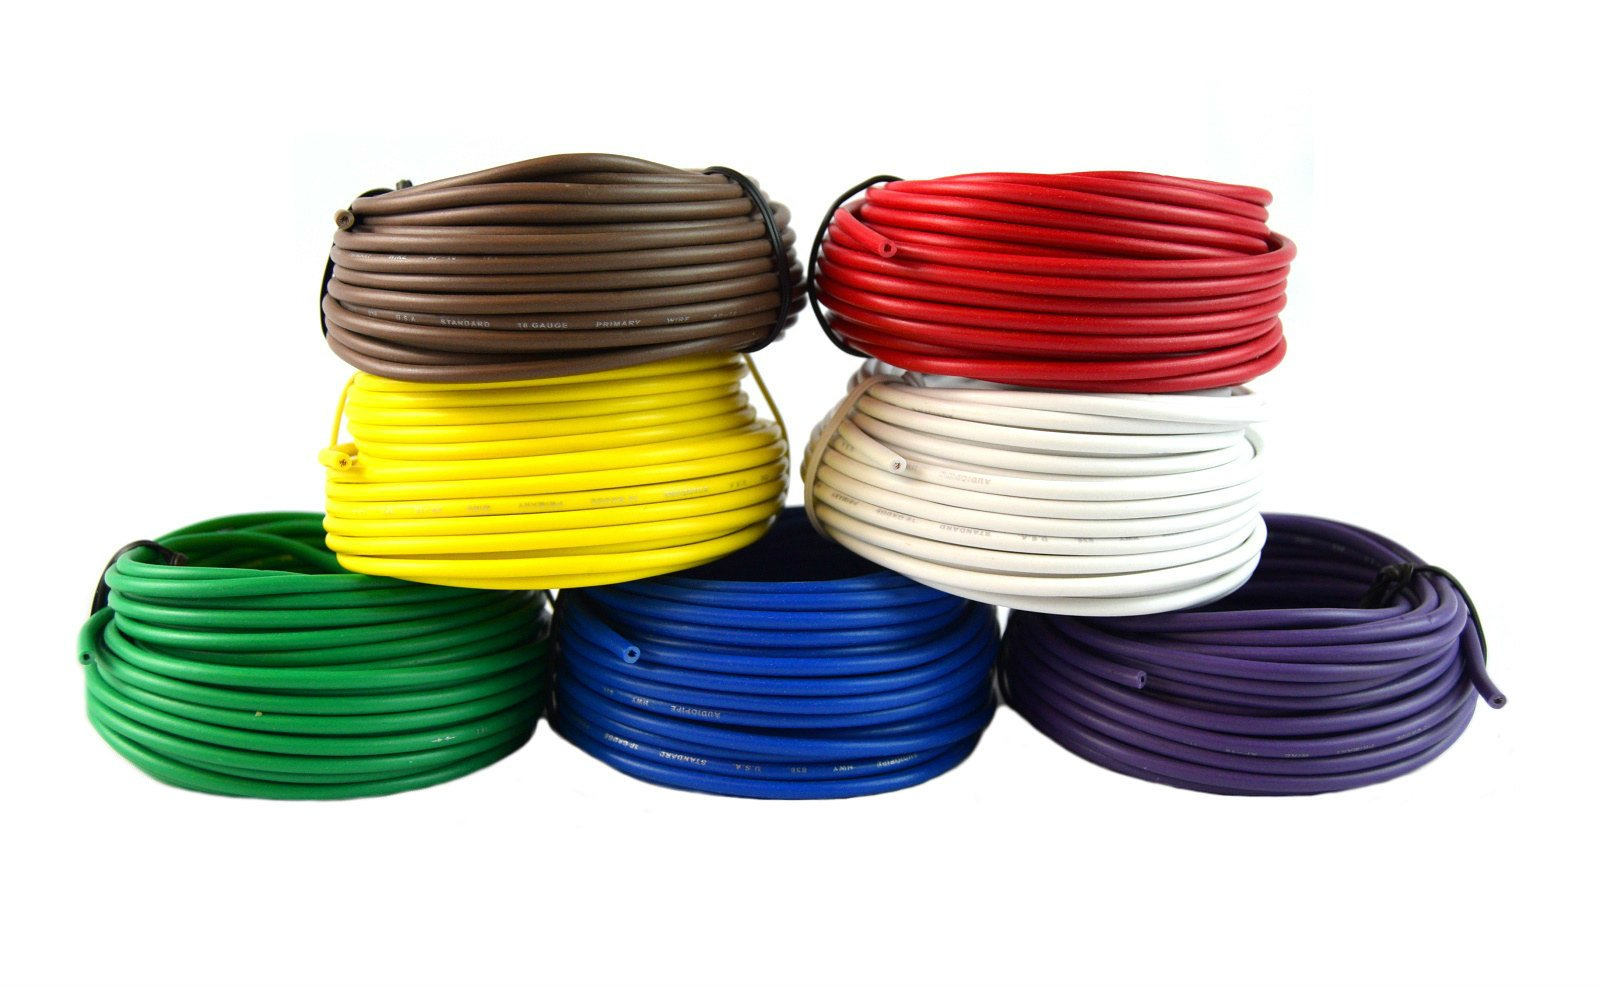 Best Connections 18 Gauge Trailer Light Cable Wiring Harness 25 Feet Each 7 Rolls 175 Feet Total